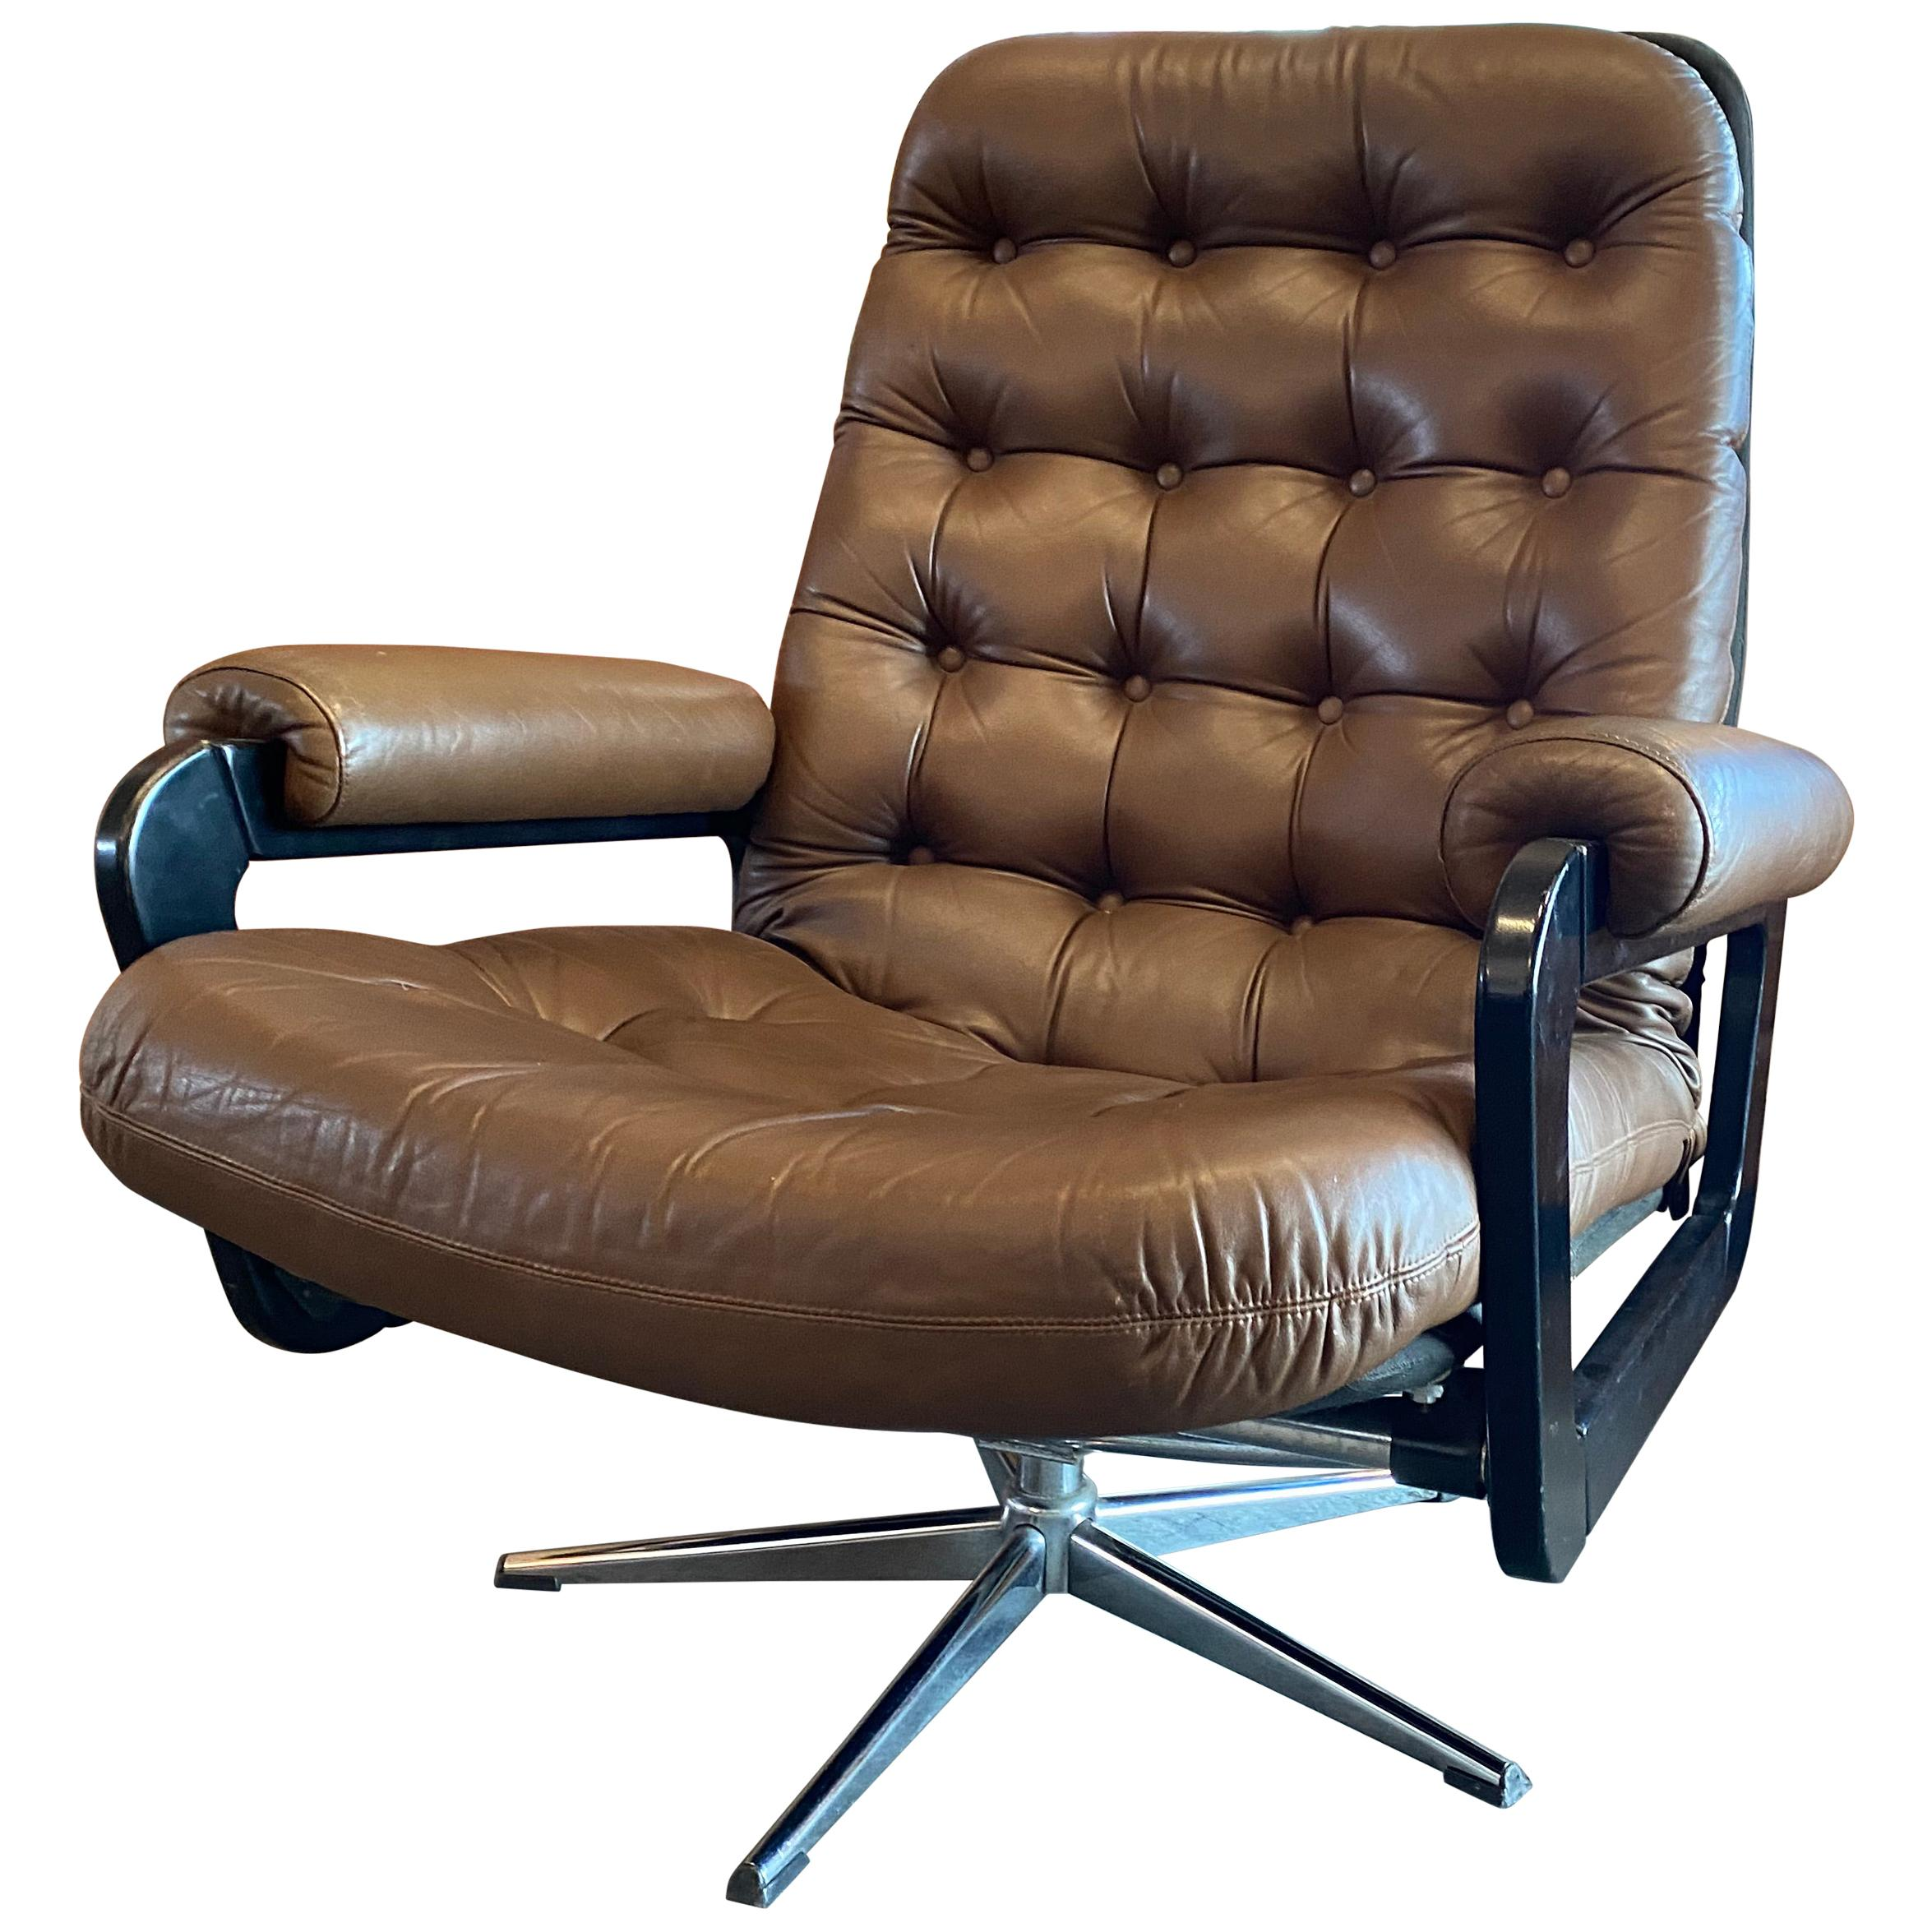 Chesterfield Style Lounge Chair, 1970s